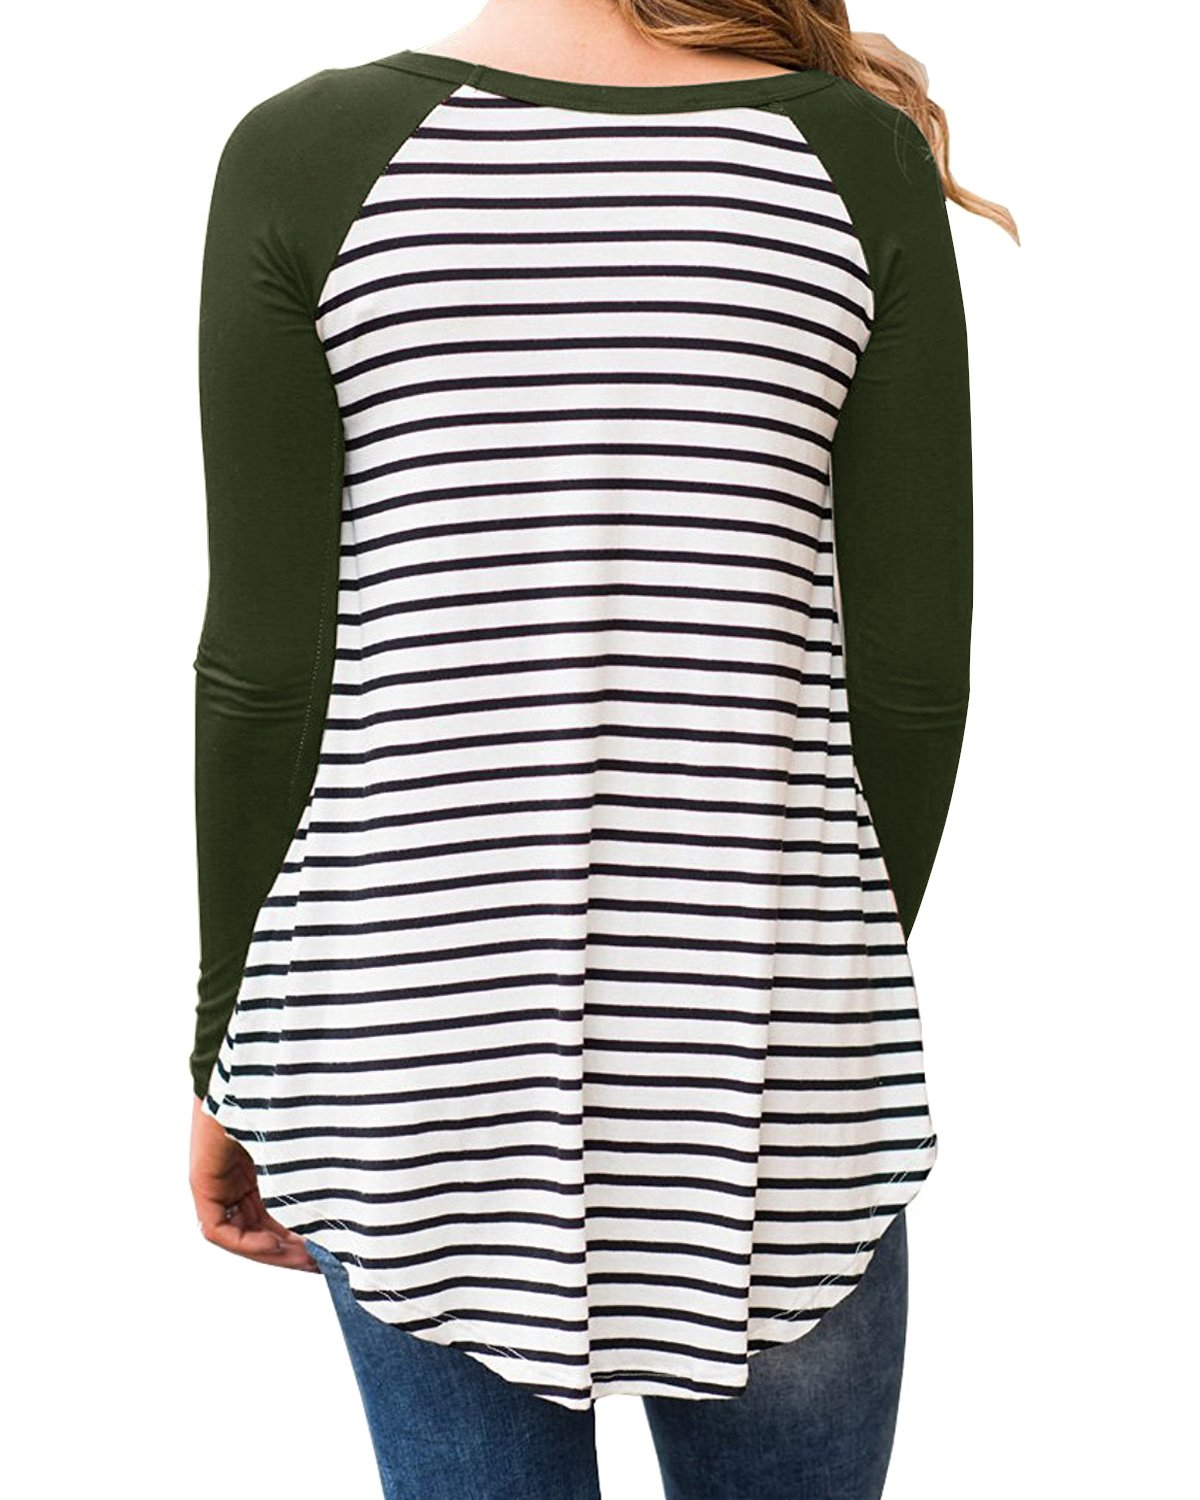 Cnfio Womens Blouses Striped Shirts Long Sleeve Round Neck Patchwork Casual Tops Army Green XL by Cnfio (Image #3)